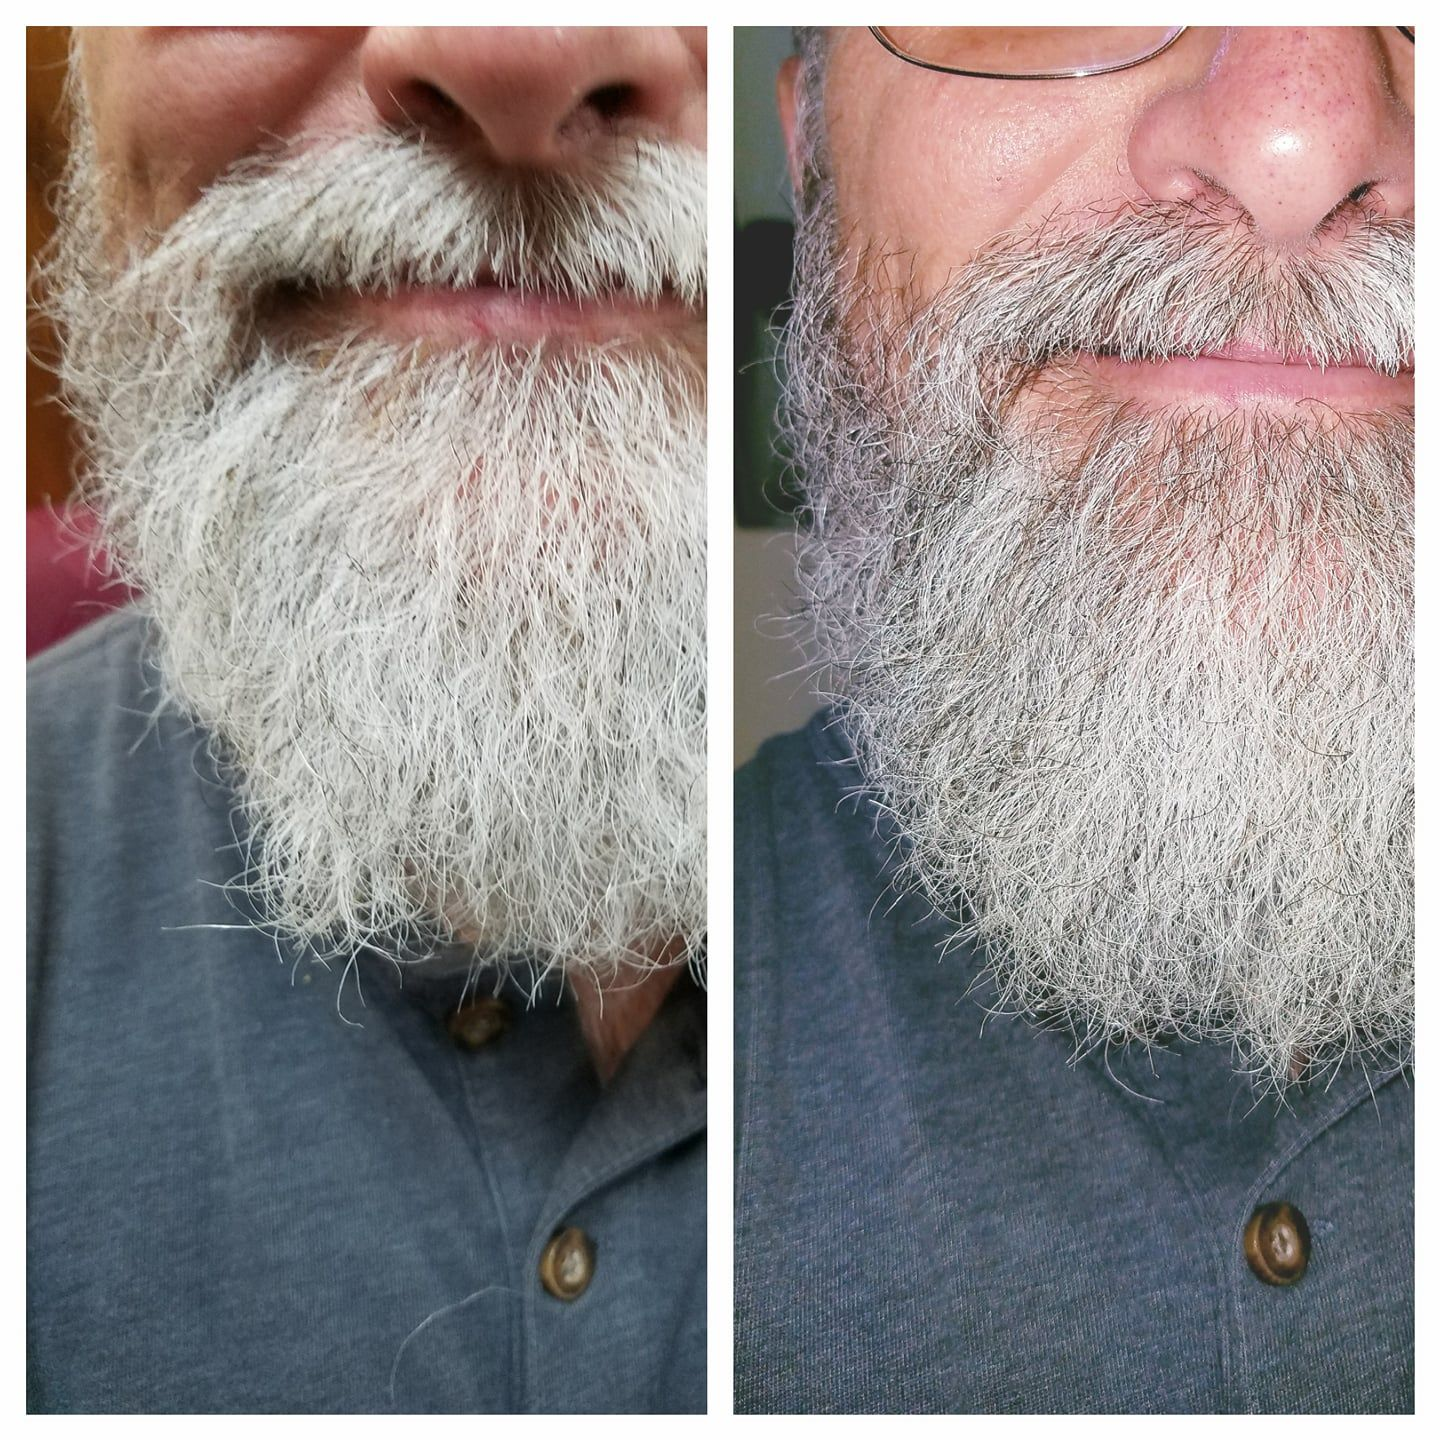 Here's our first Monat Beard Shampoo and conditioner. Also